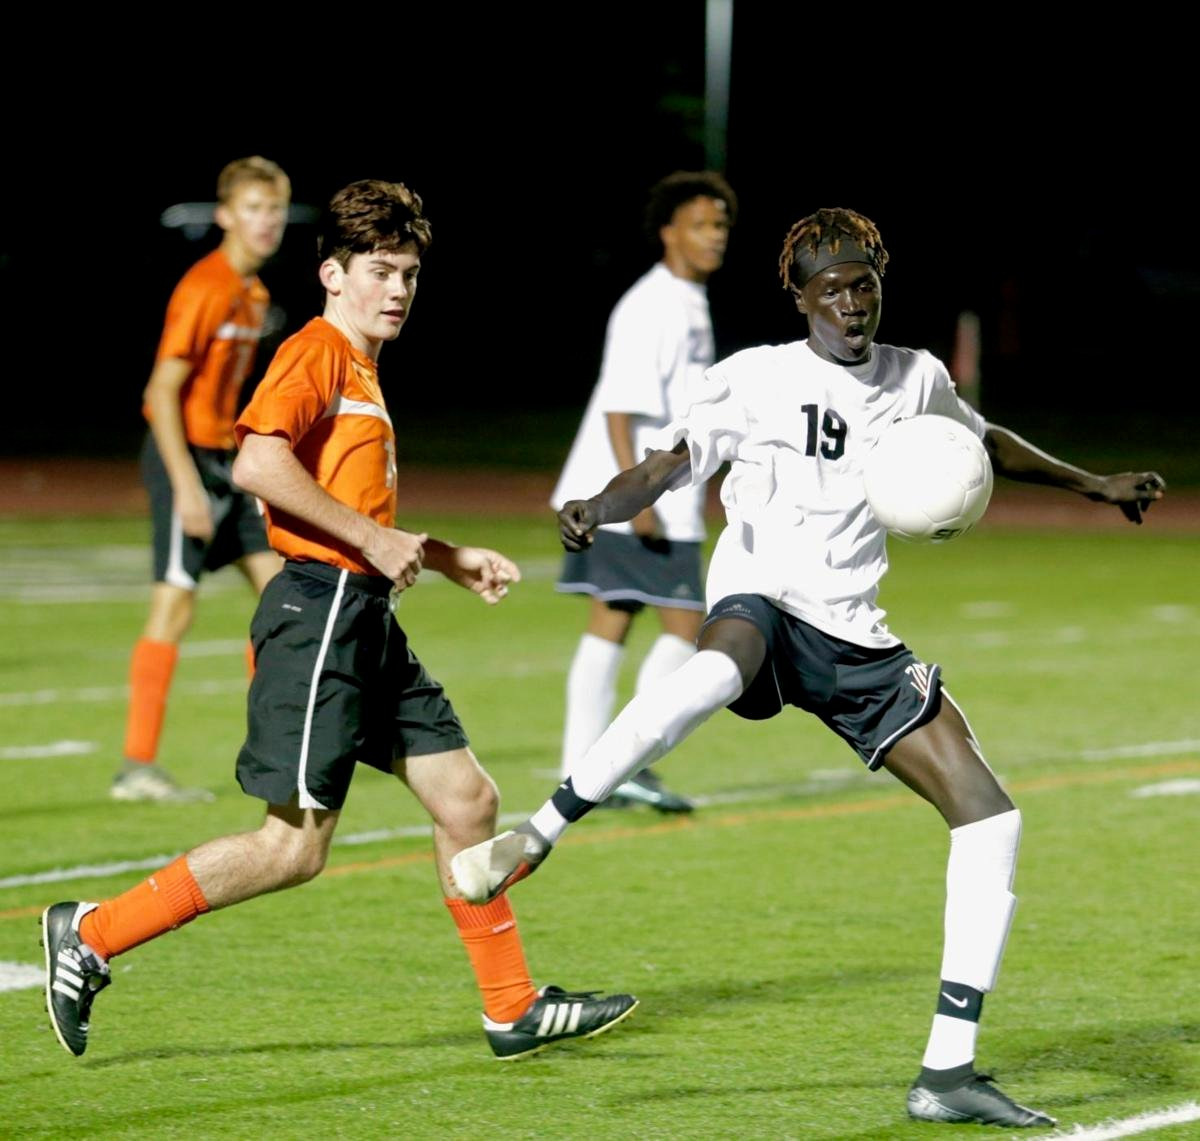 Photos: WSHS Boy's Soccer